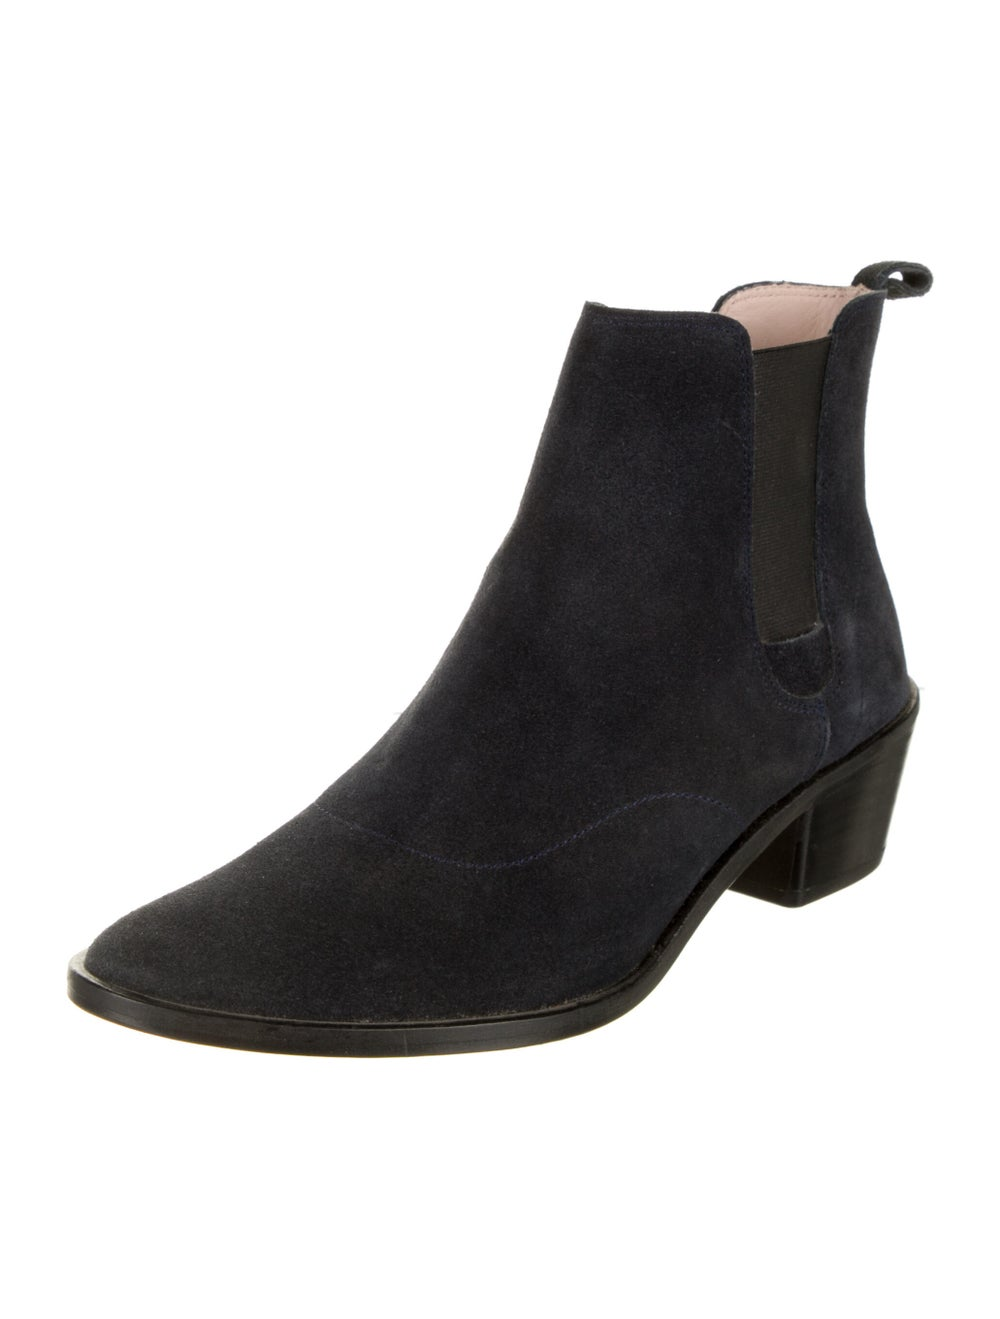 Repetto Suede Chelsea Boots Blue - image 2